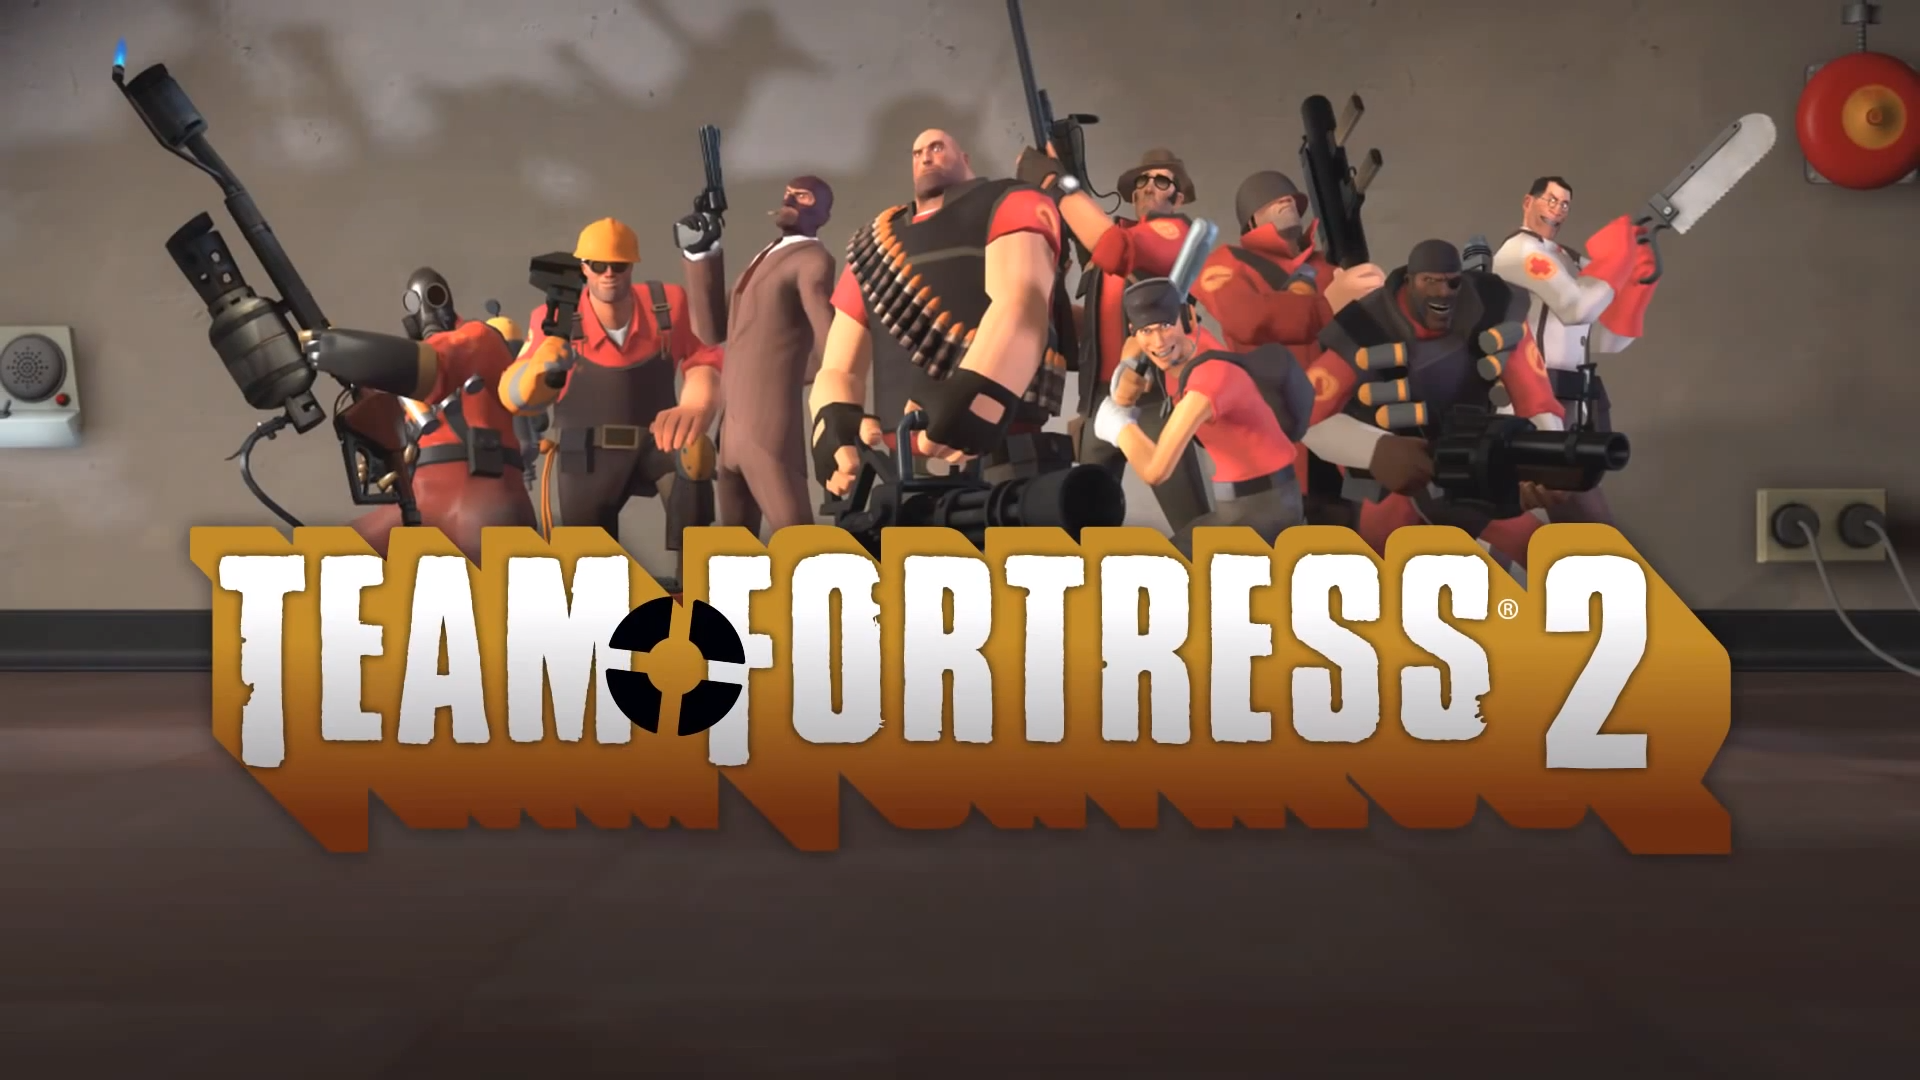 Team fortress 2 is the best game to ever exist